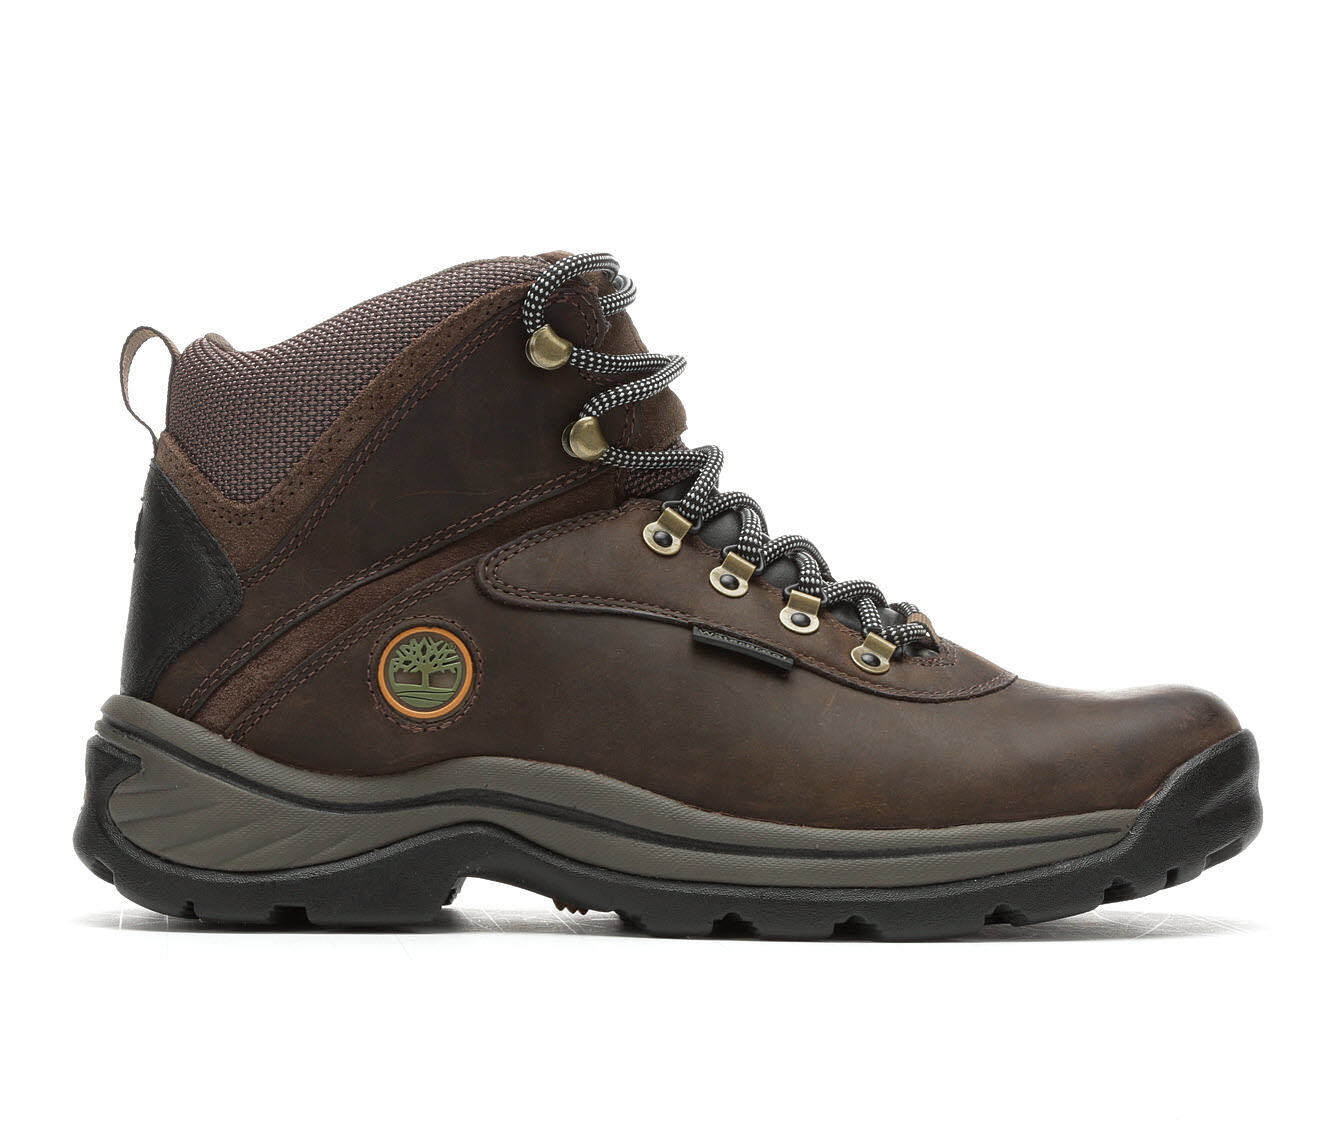 best cheap Men's Timberland White Ledge Waterproof Hiking Boots Brown